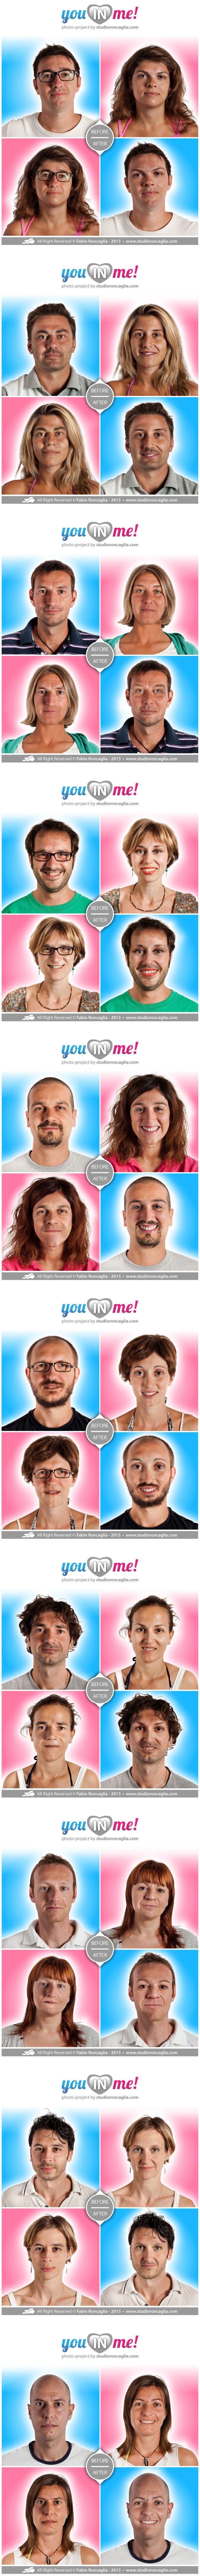 """The photographic project """"You in Me!"""" is born to be ironical about one of the most typical and frequent feature of loving couples: they lose themselves in one another.  60 people (30 loving couples) accepted to participate in this project/experiment in order to see and recognize their faces in a totally new vision, which is at the same time madly familiar.  Enjoy it and have a good time!  Project author Fabio Roncaglia All Right Reserved © Fabio Roncaglia - www.studioroncaglia.com"""